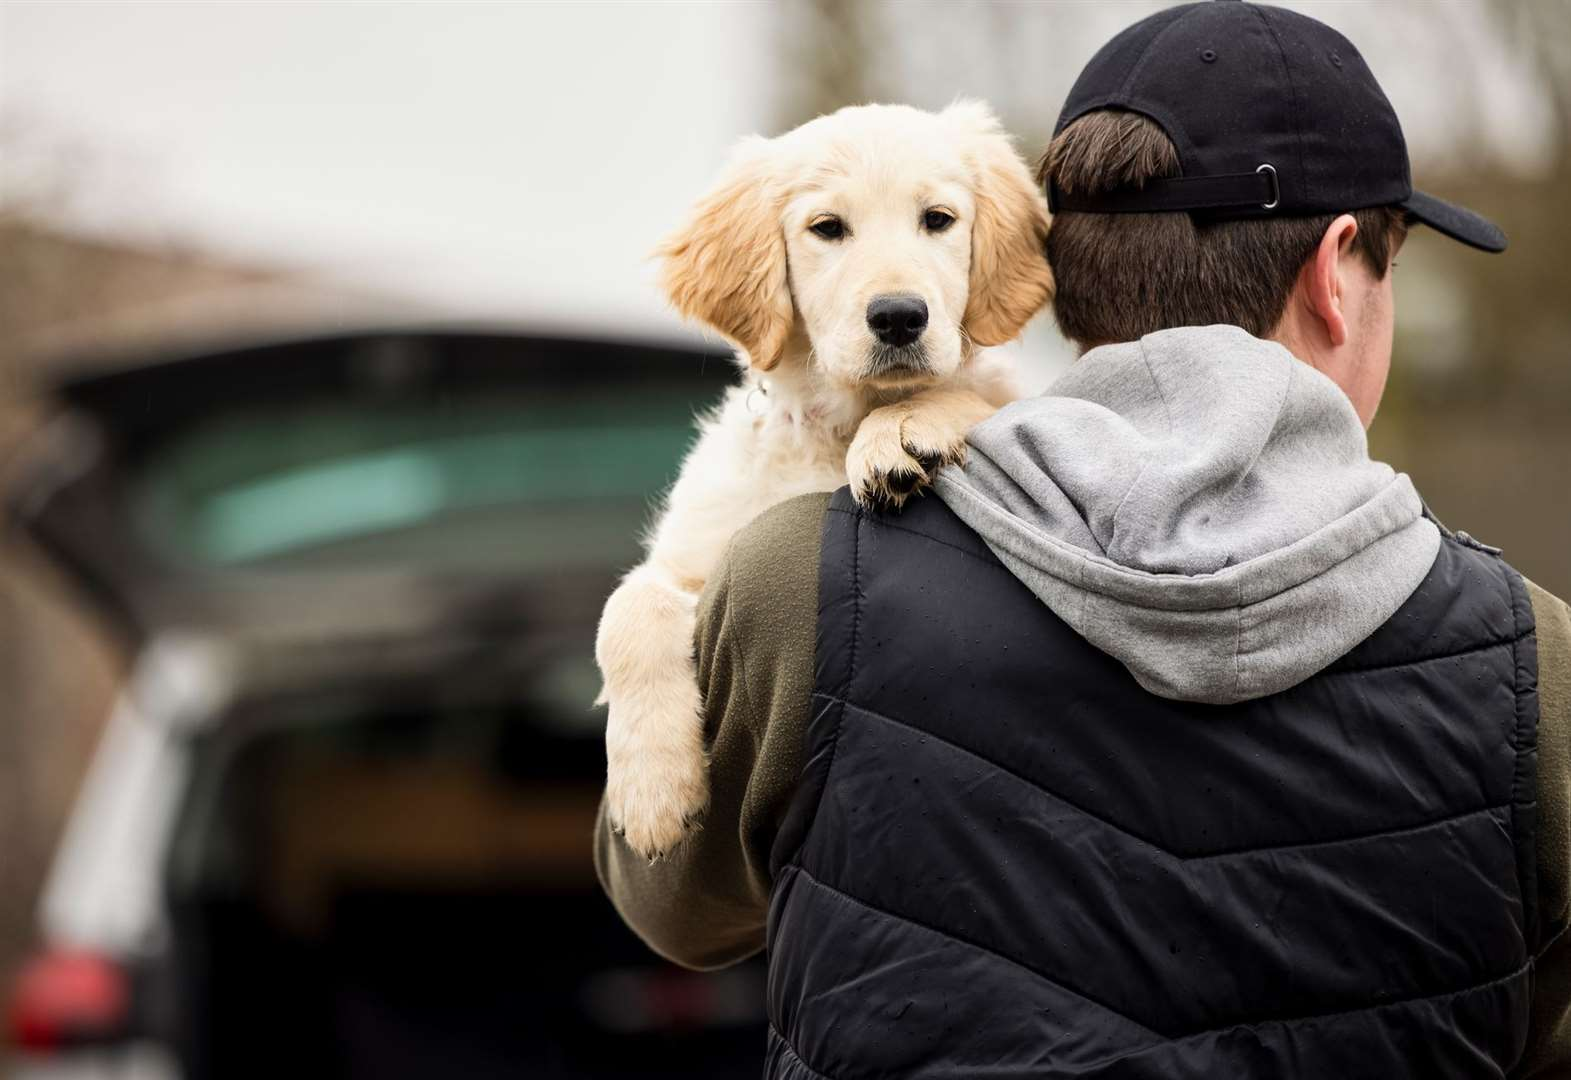 10 ways to help keep your pet safe from dognappers